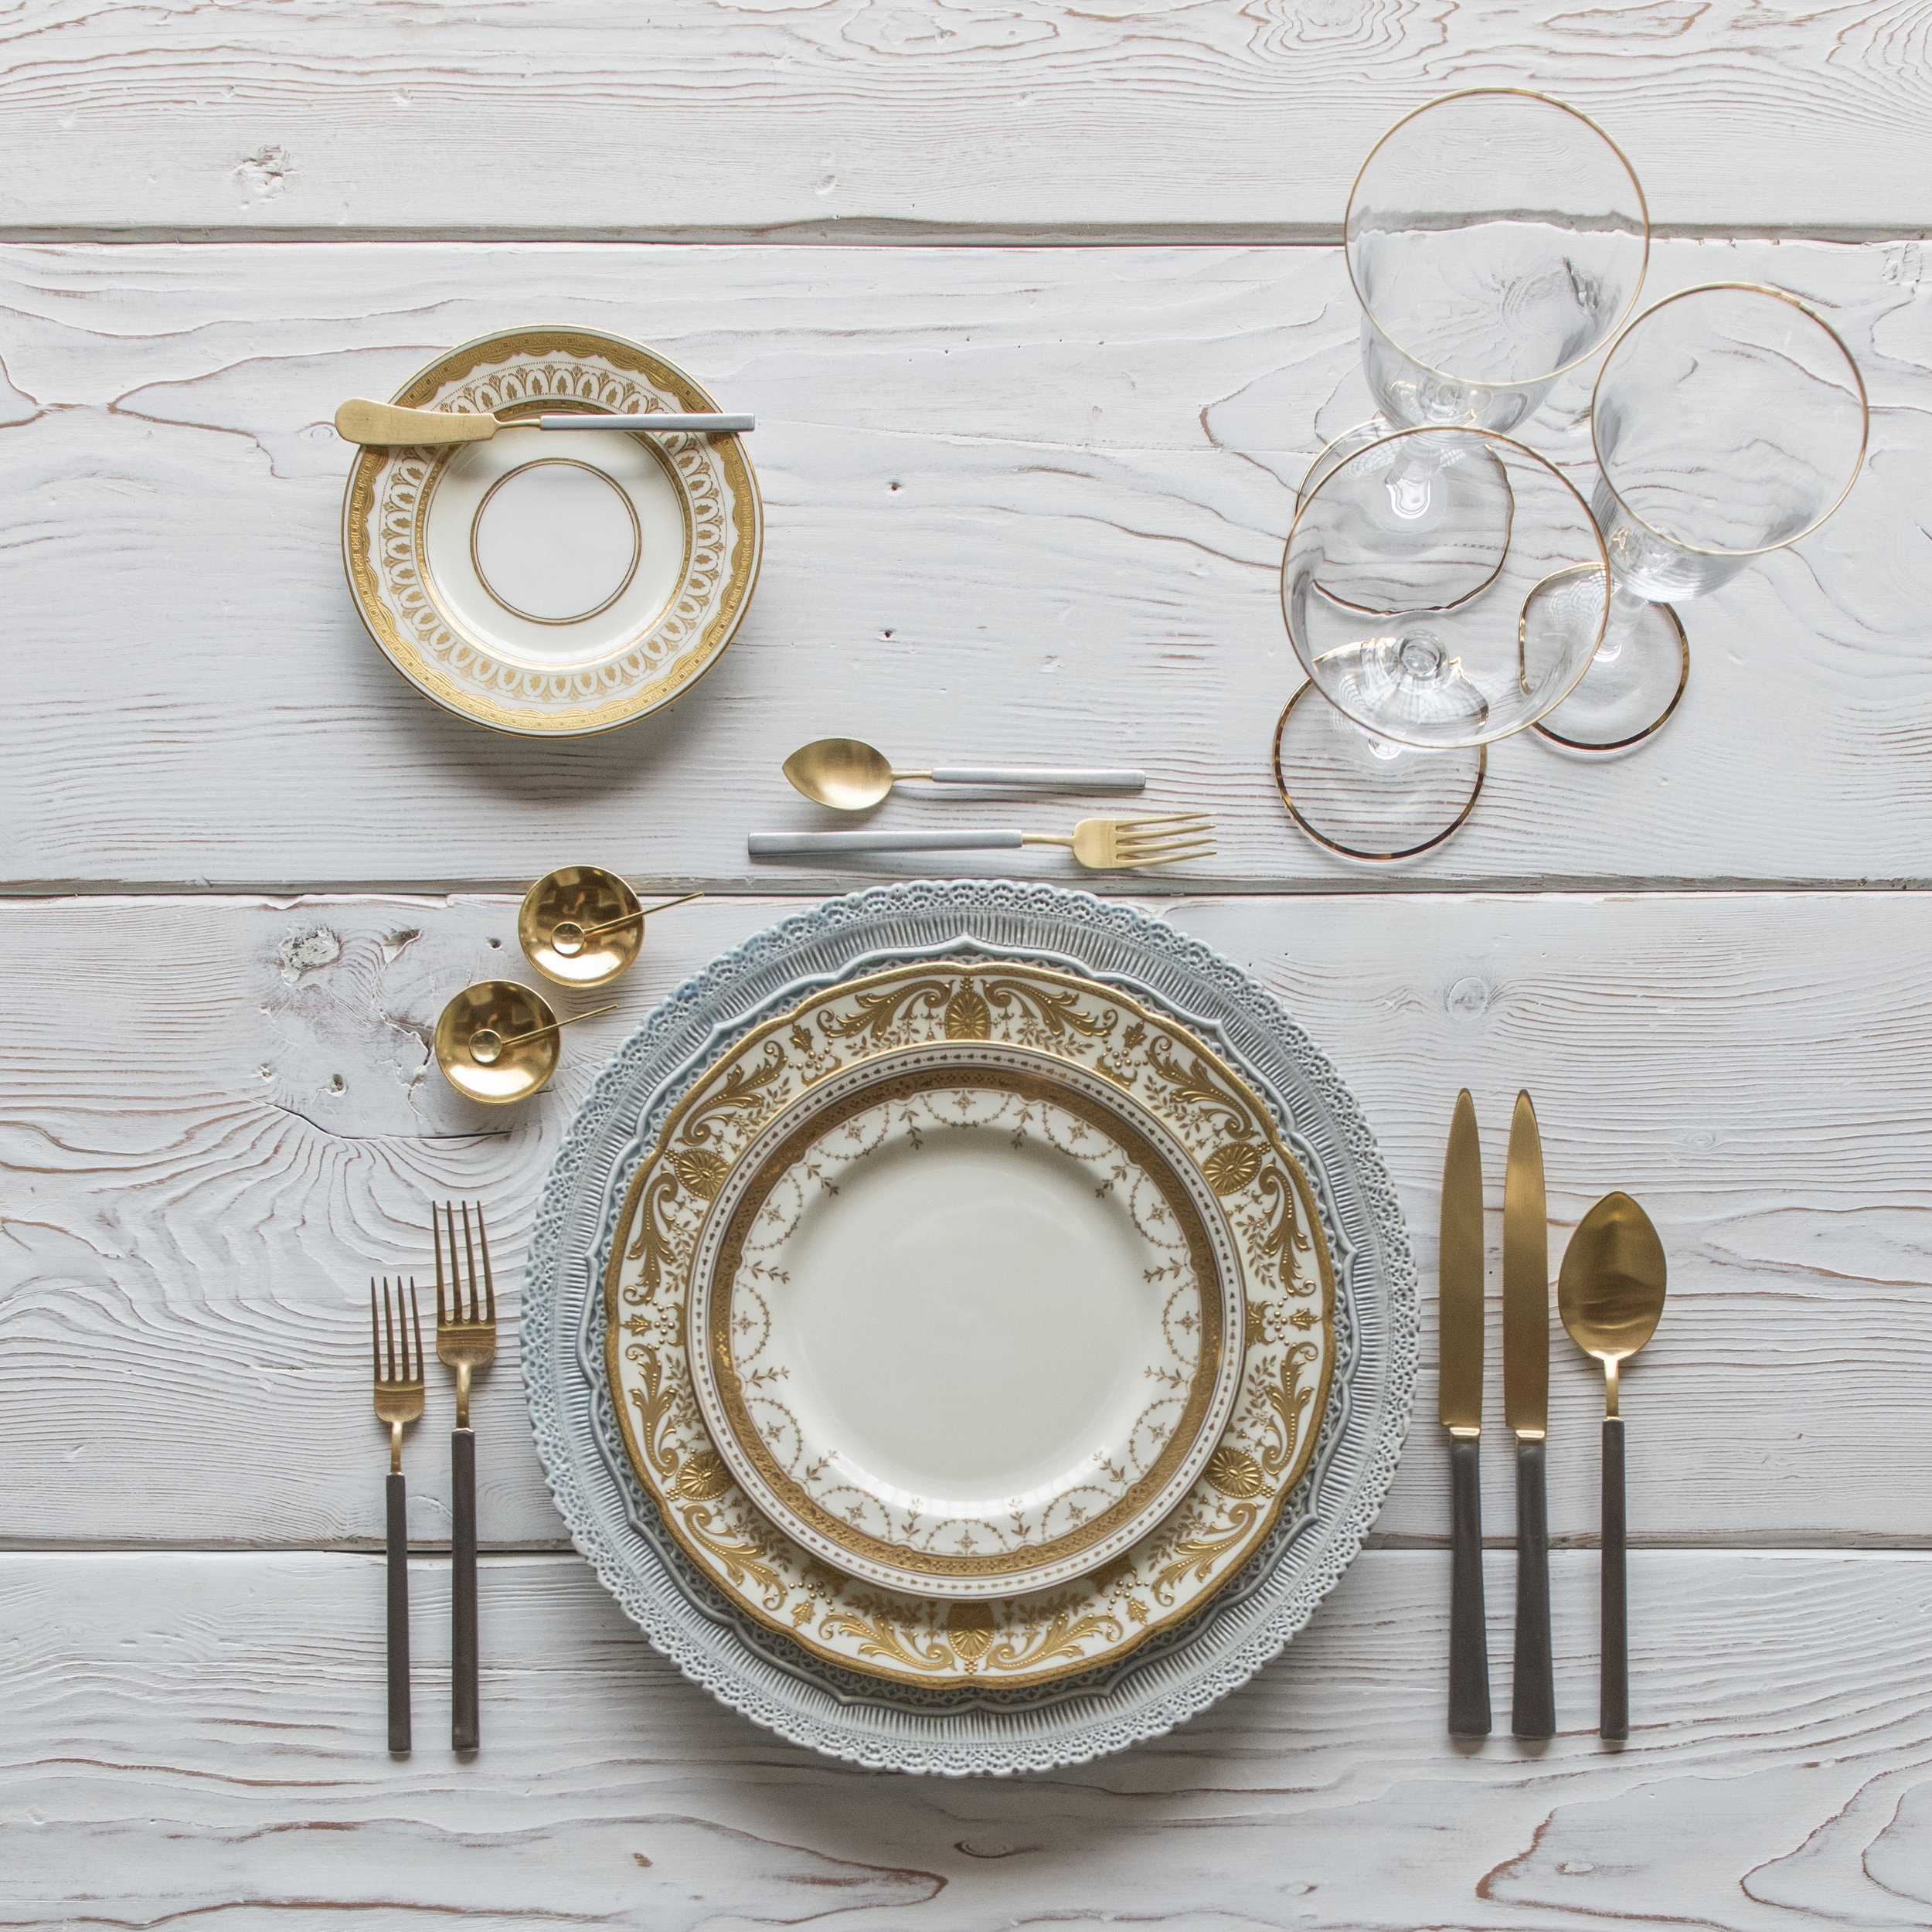 RENT: Lace Chargers in Dusty Blue + Crown Gold Collection Vintage China + Axel Flatware in Matte 24k Gold/Silver + Chloe 24k Gold Rimmed Stemware + 14k Gold Salt Cellars + Tiny Gold Spoons  SHOP:Chloe 24k Gold Rimmed Stemware + 14k Gold Salt Cellars + Tiny Gold Spoons